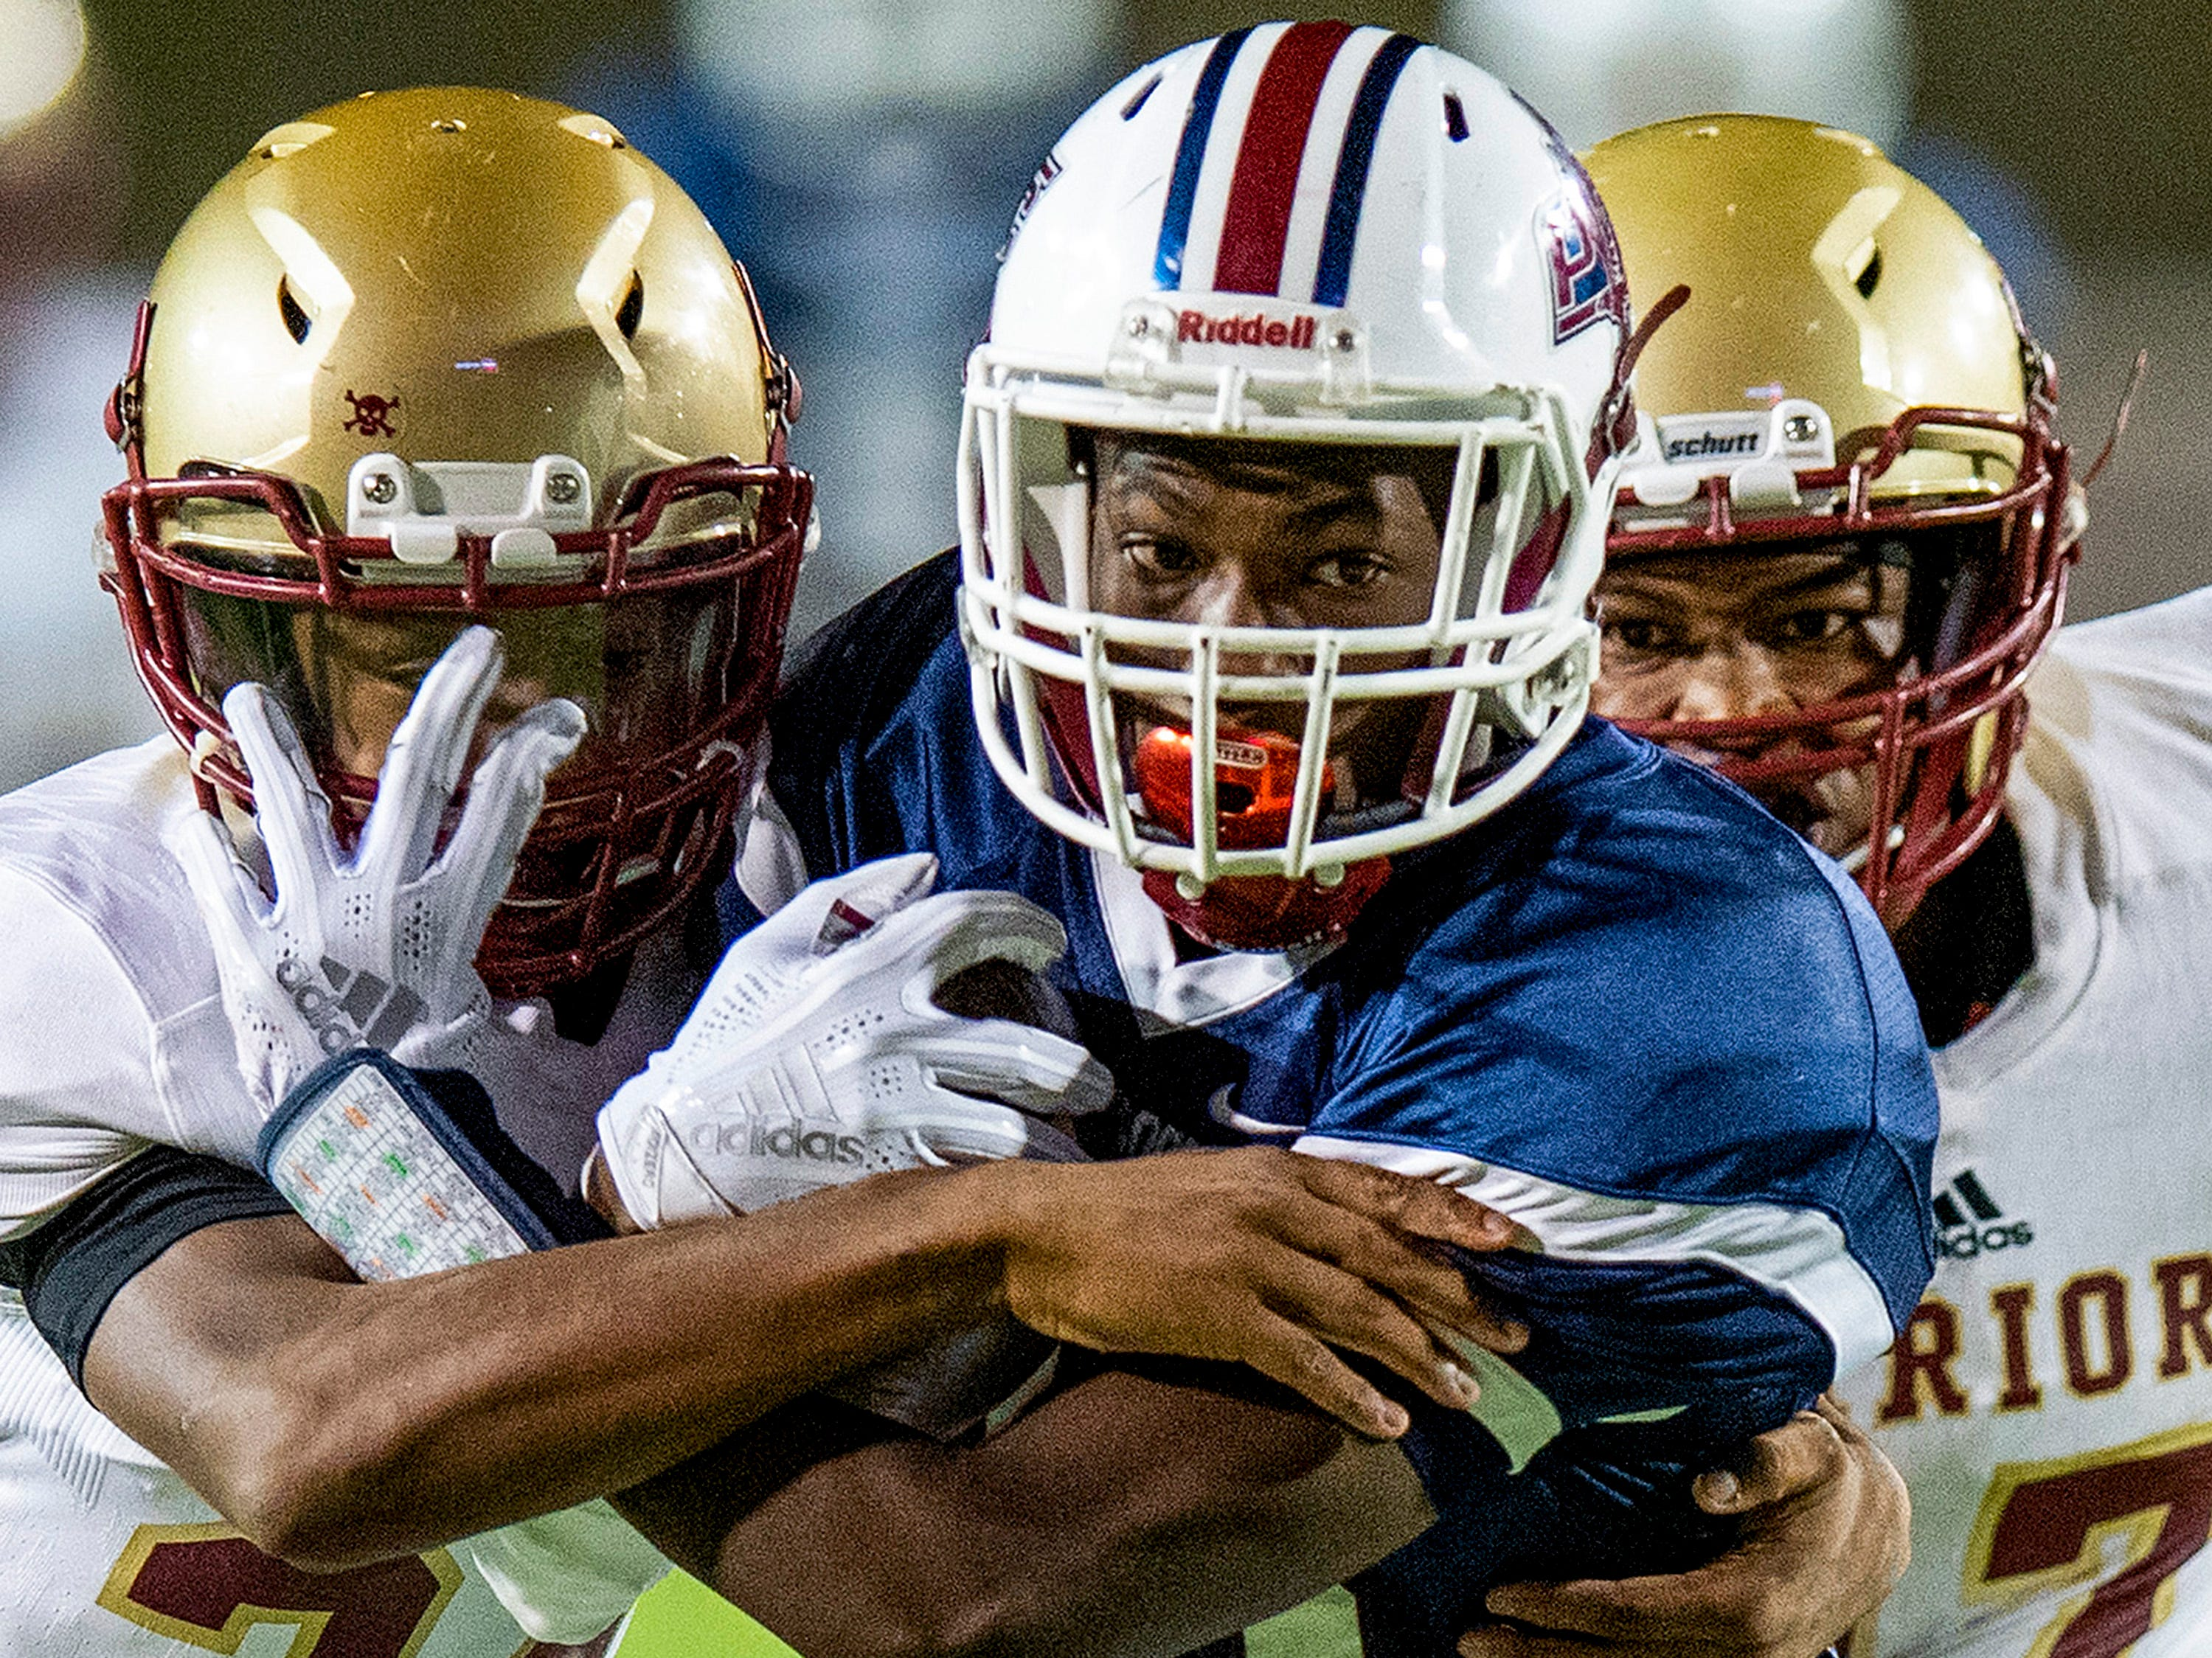 Park Crossing's Tacarius Buford (13) is stopped by Russell County's Keyshawn Reynolds (24) and Kelton Marshall (27) at Cramton Bowl in Montgomery, Ala., on Thursday October 18, 2018.